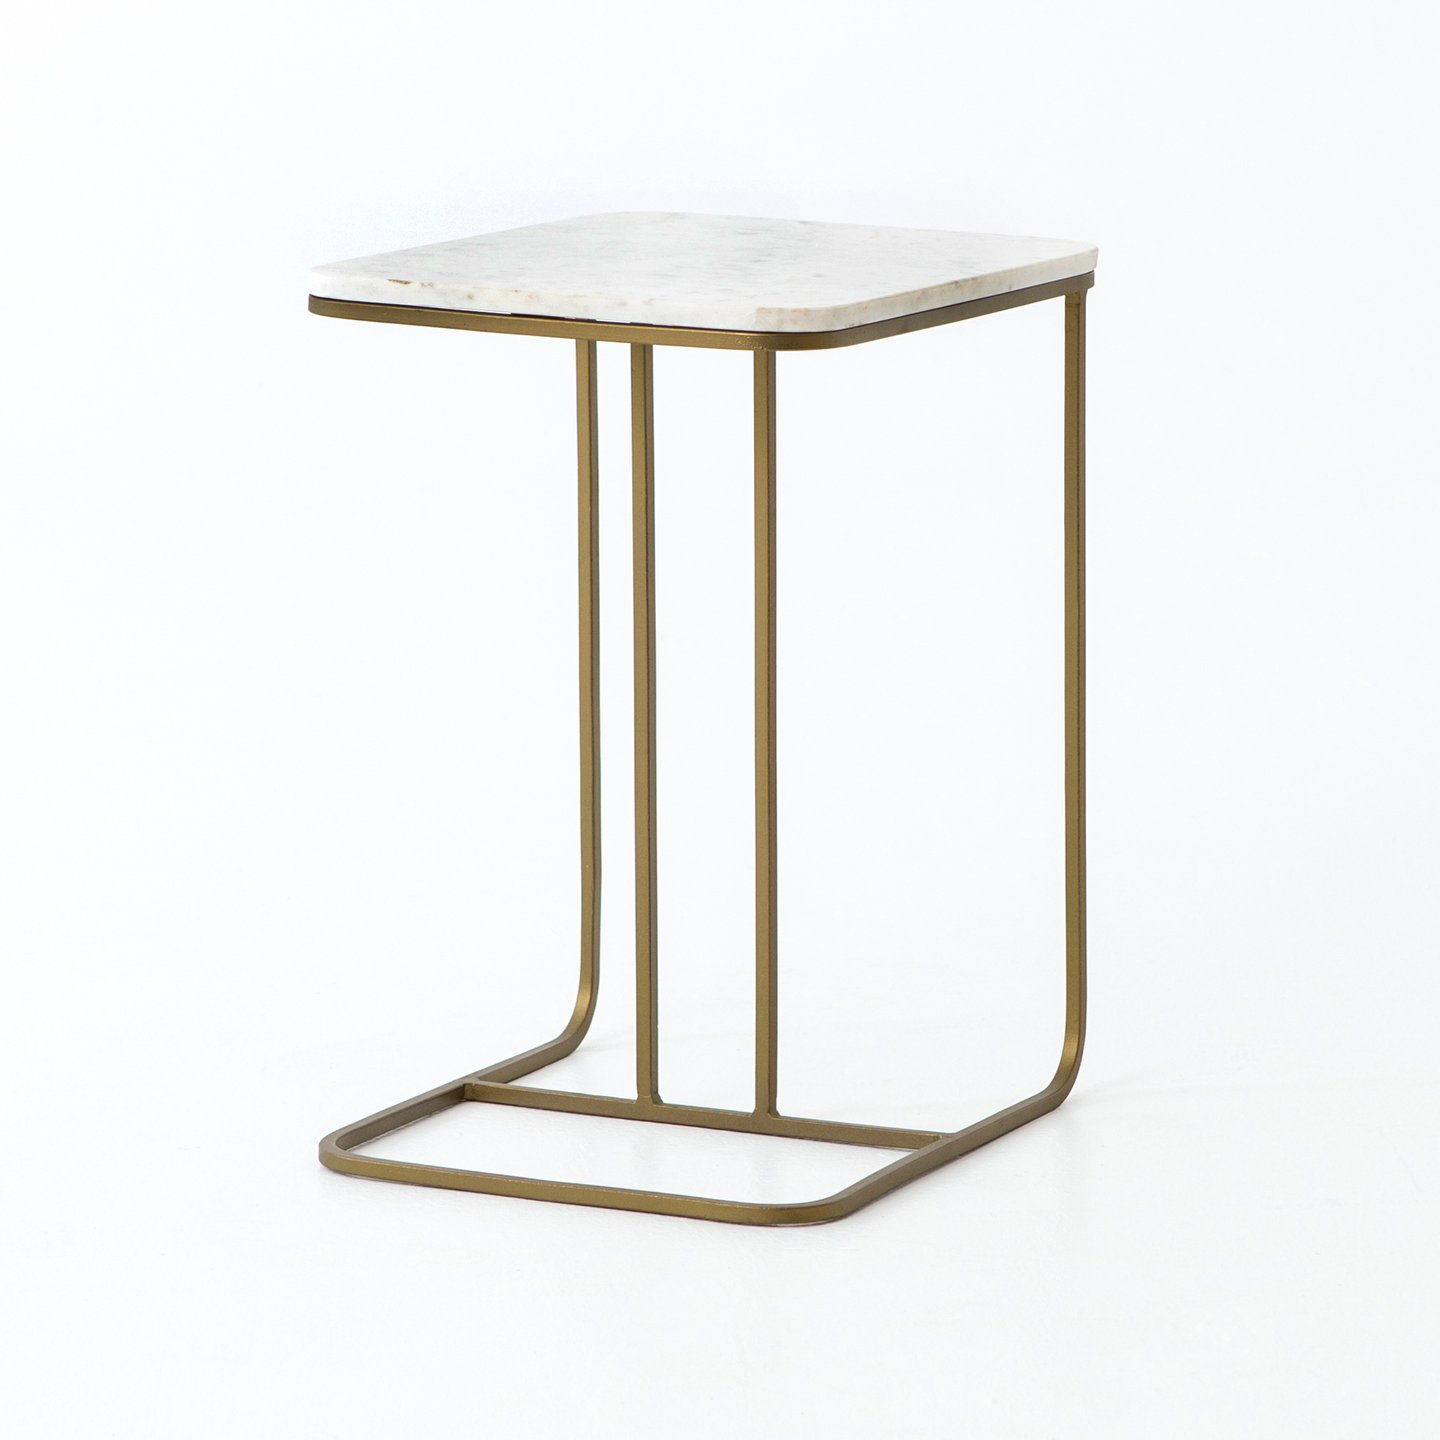 marble accent table limetennis four hands adalley polished white side gold signy drum brass halloween quilted runner patterns handmade coffee ideas square counter height dining